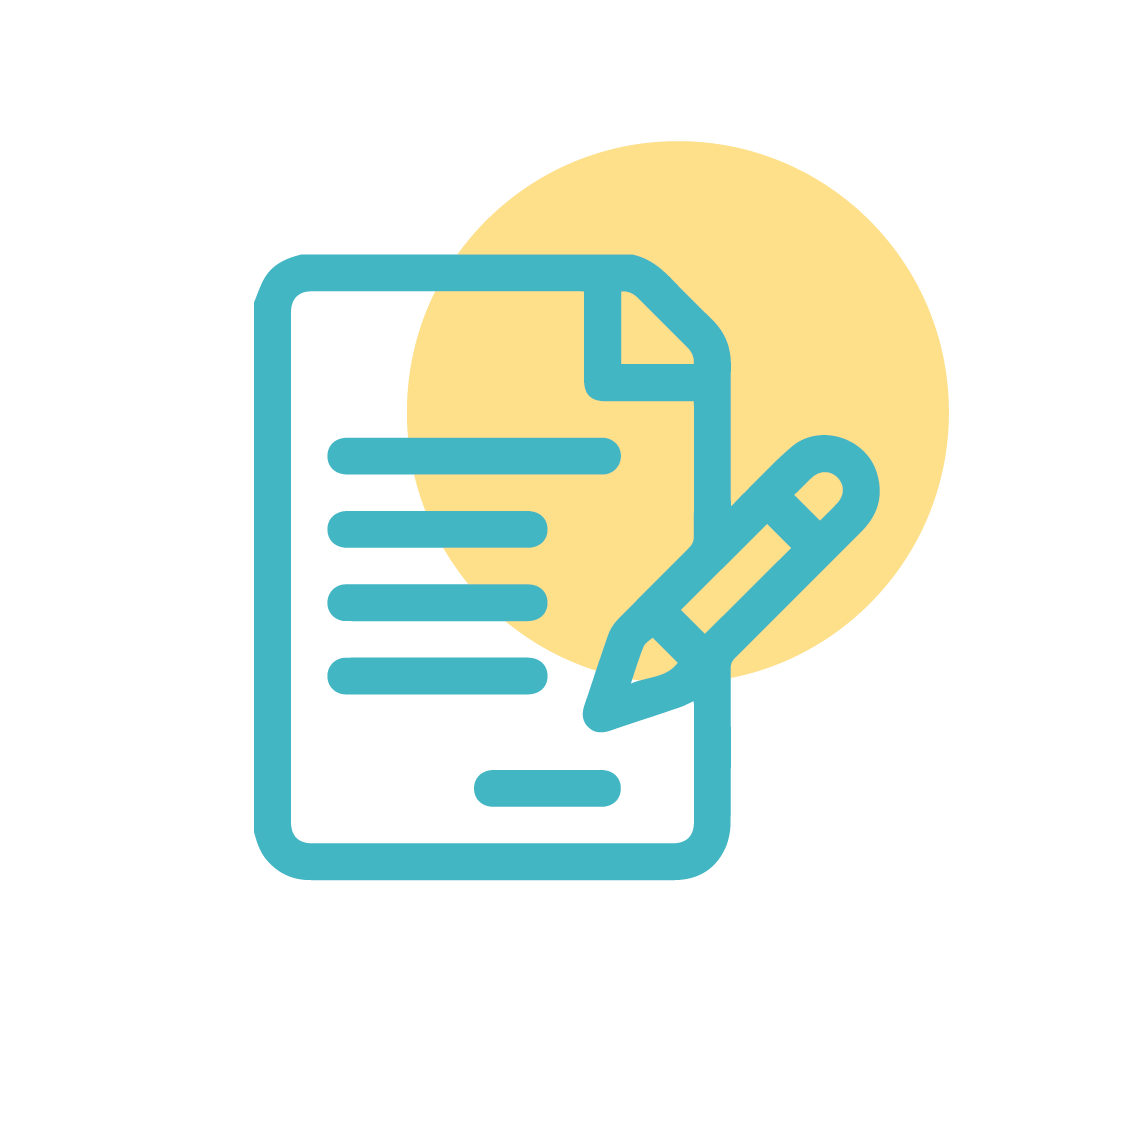 Copy writing icon illustration